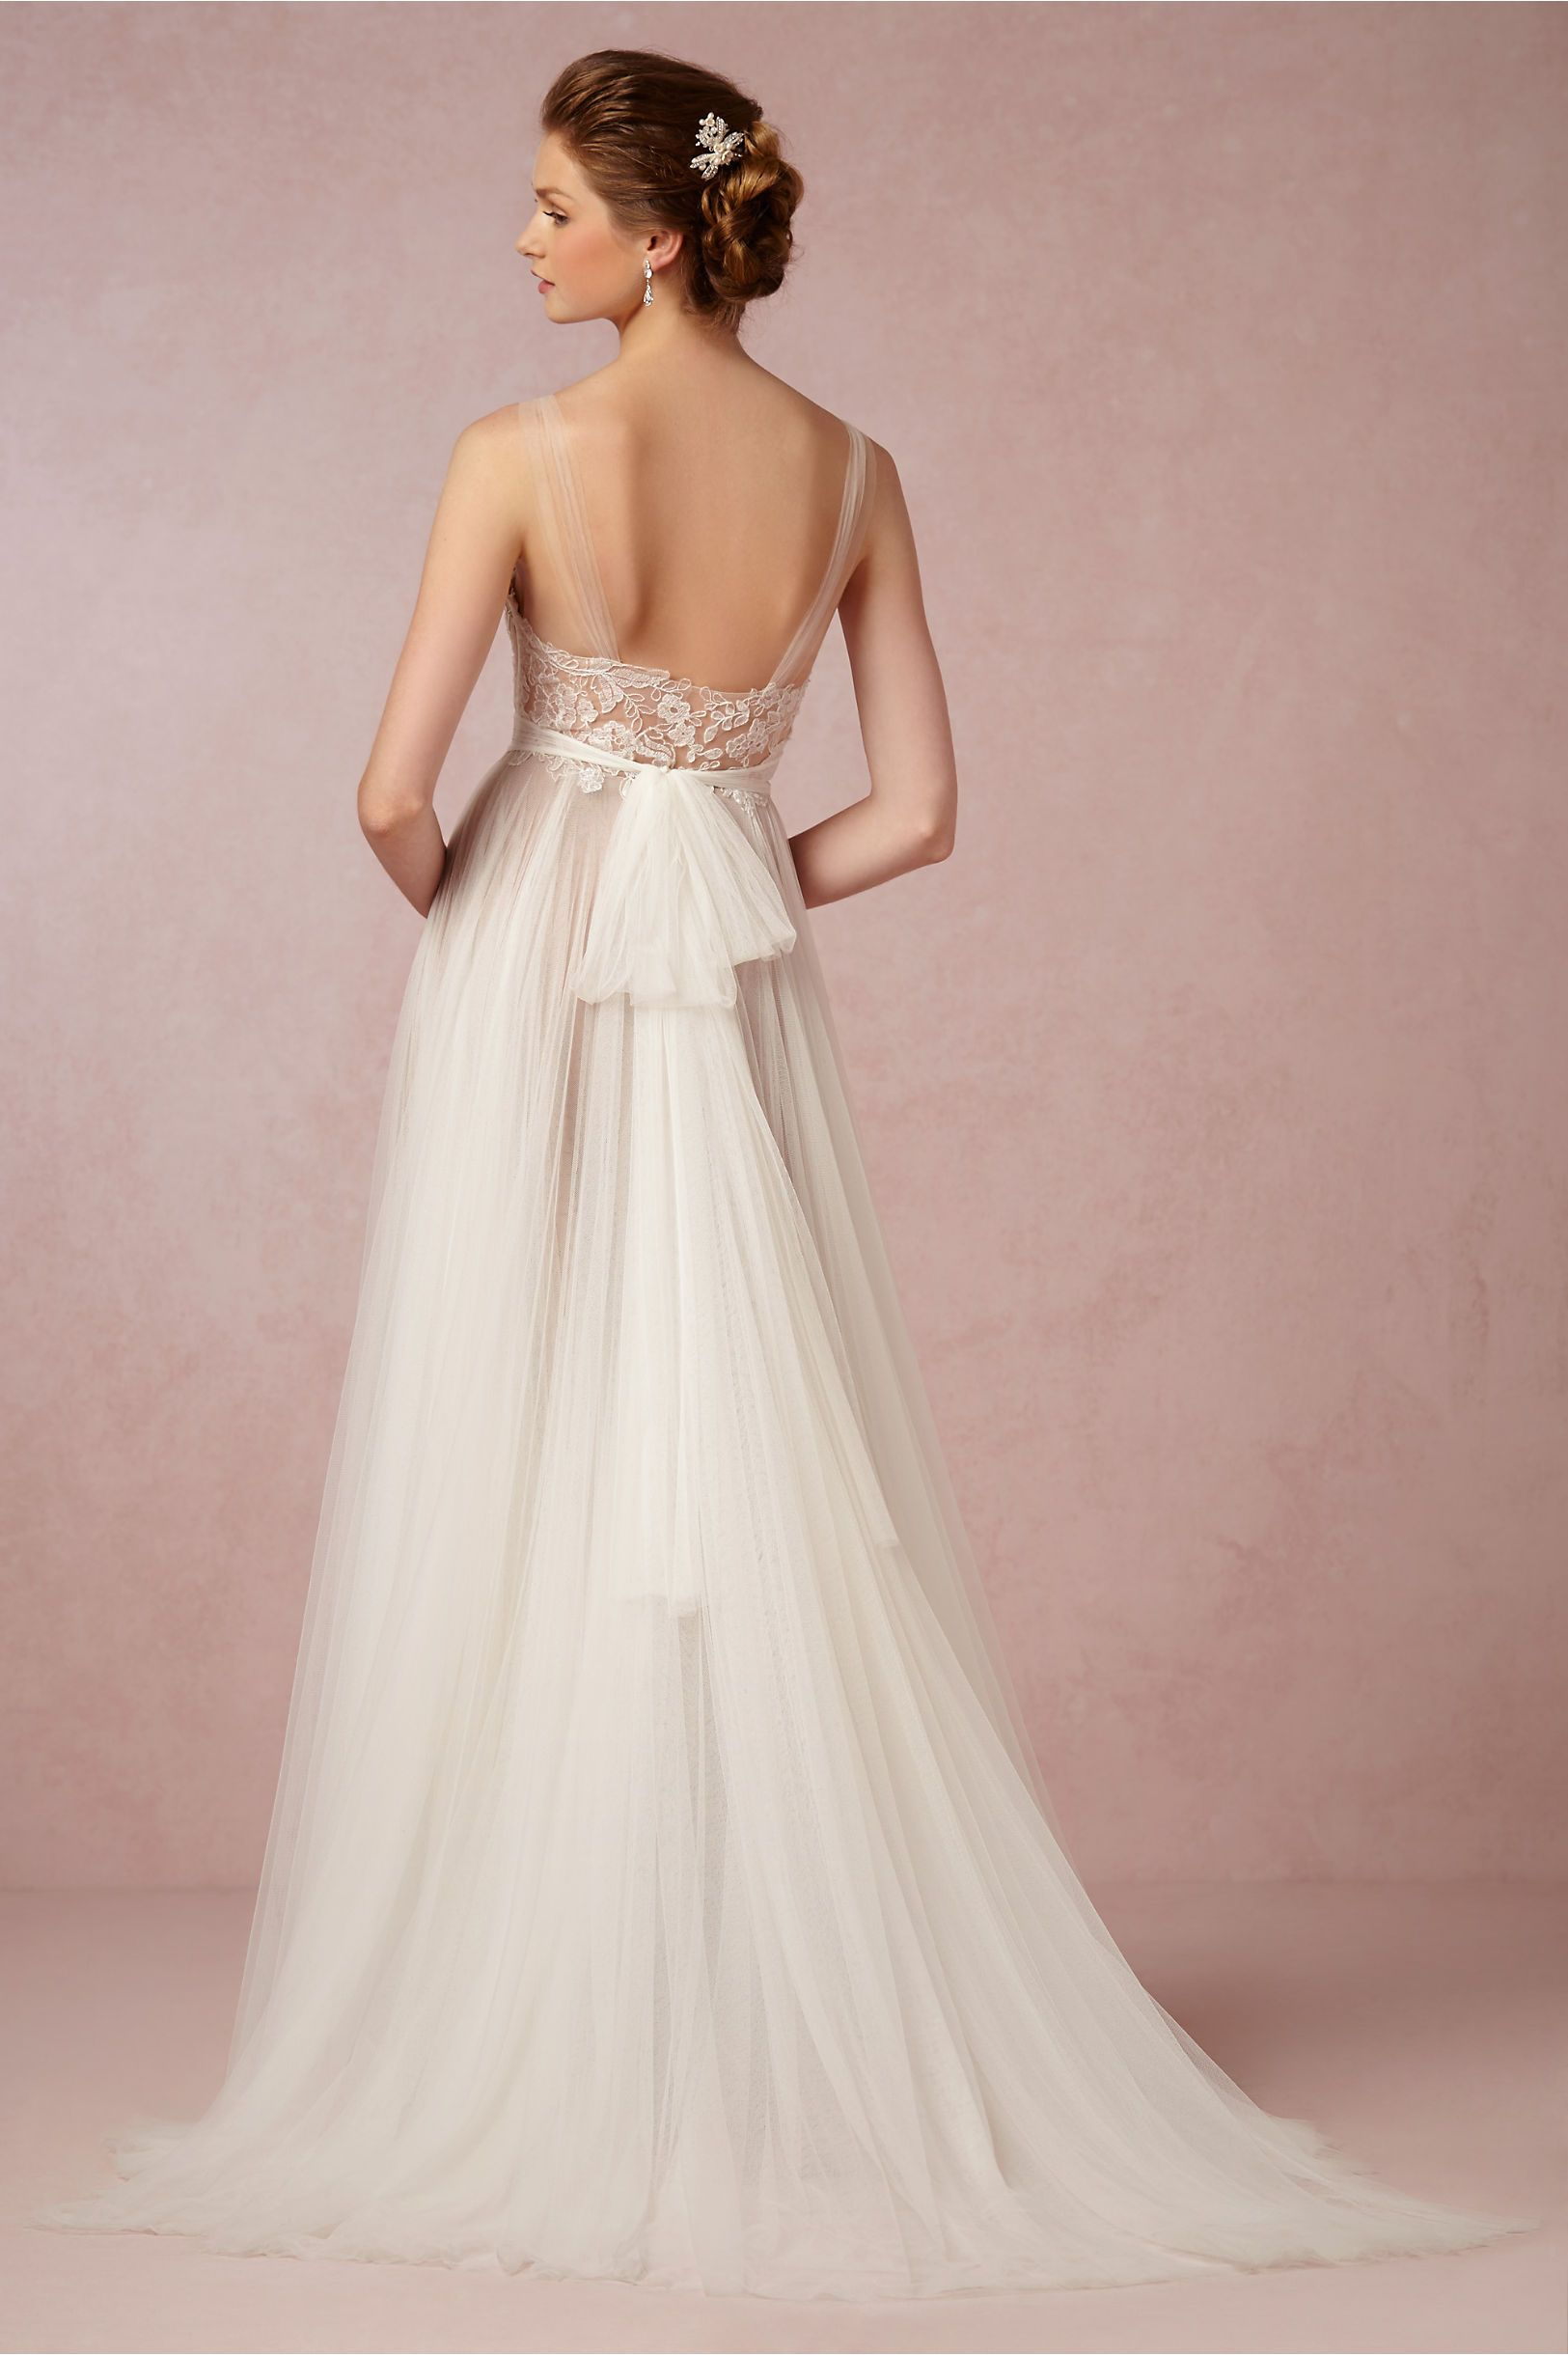 Penelope Gown from BHLDN | Drees | Pinterest | Boda de cristal ...